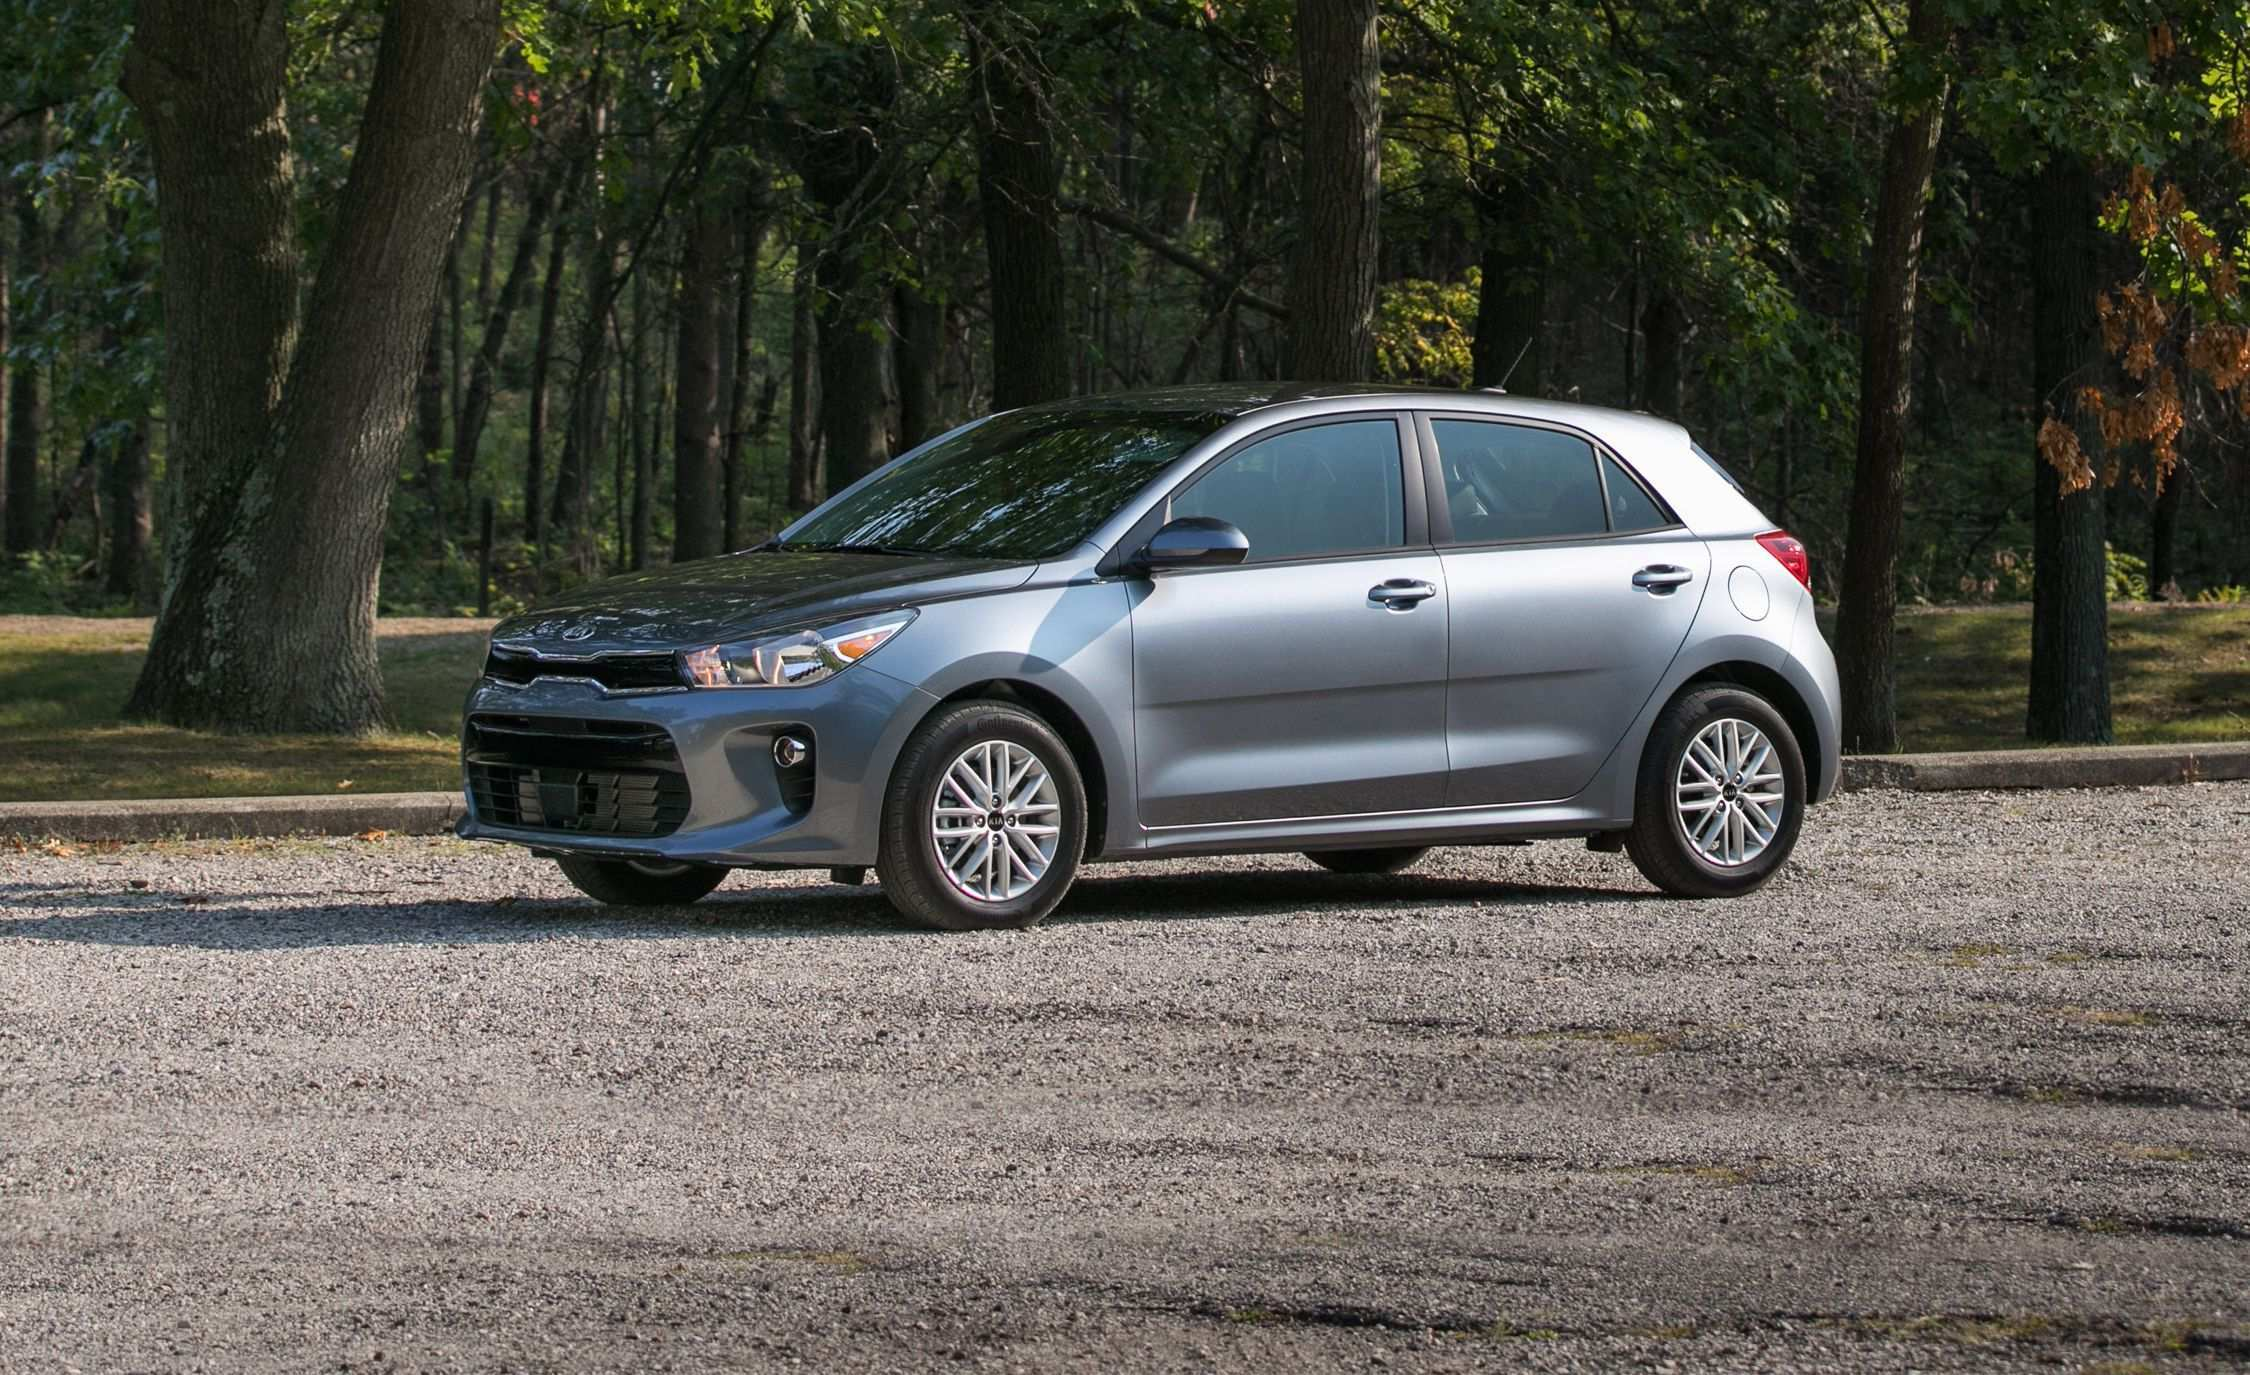 49 Great Kia Rio Lx 2020 Speed Test for Kia Rio Lx 2020